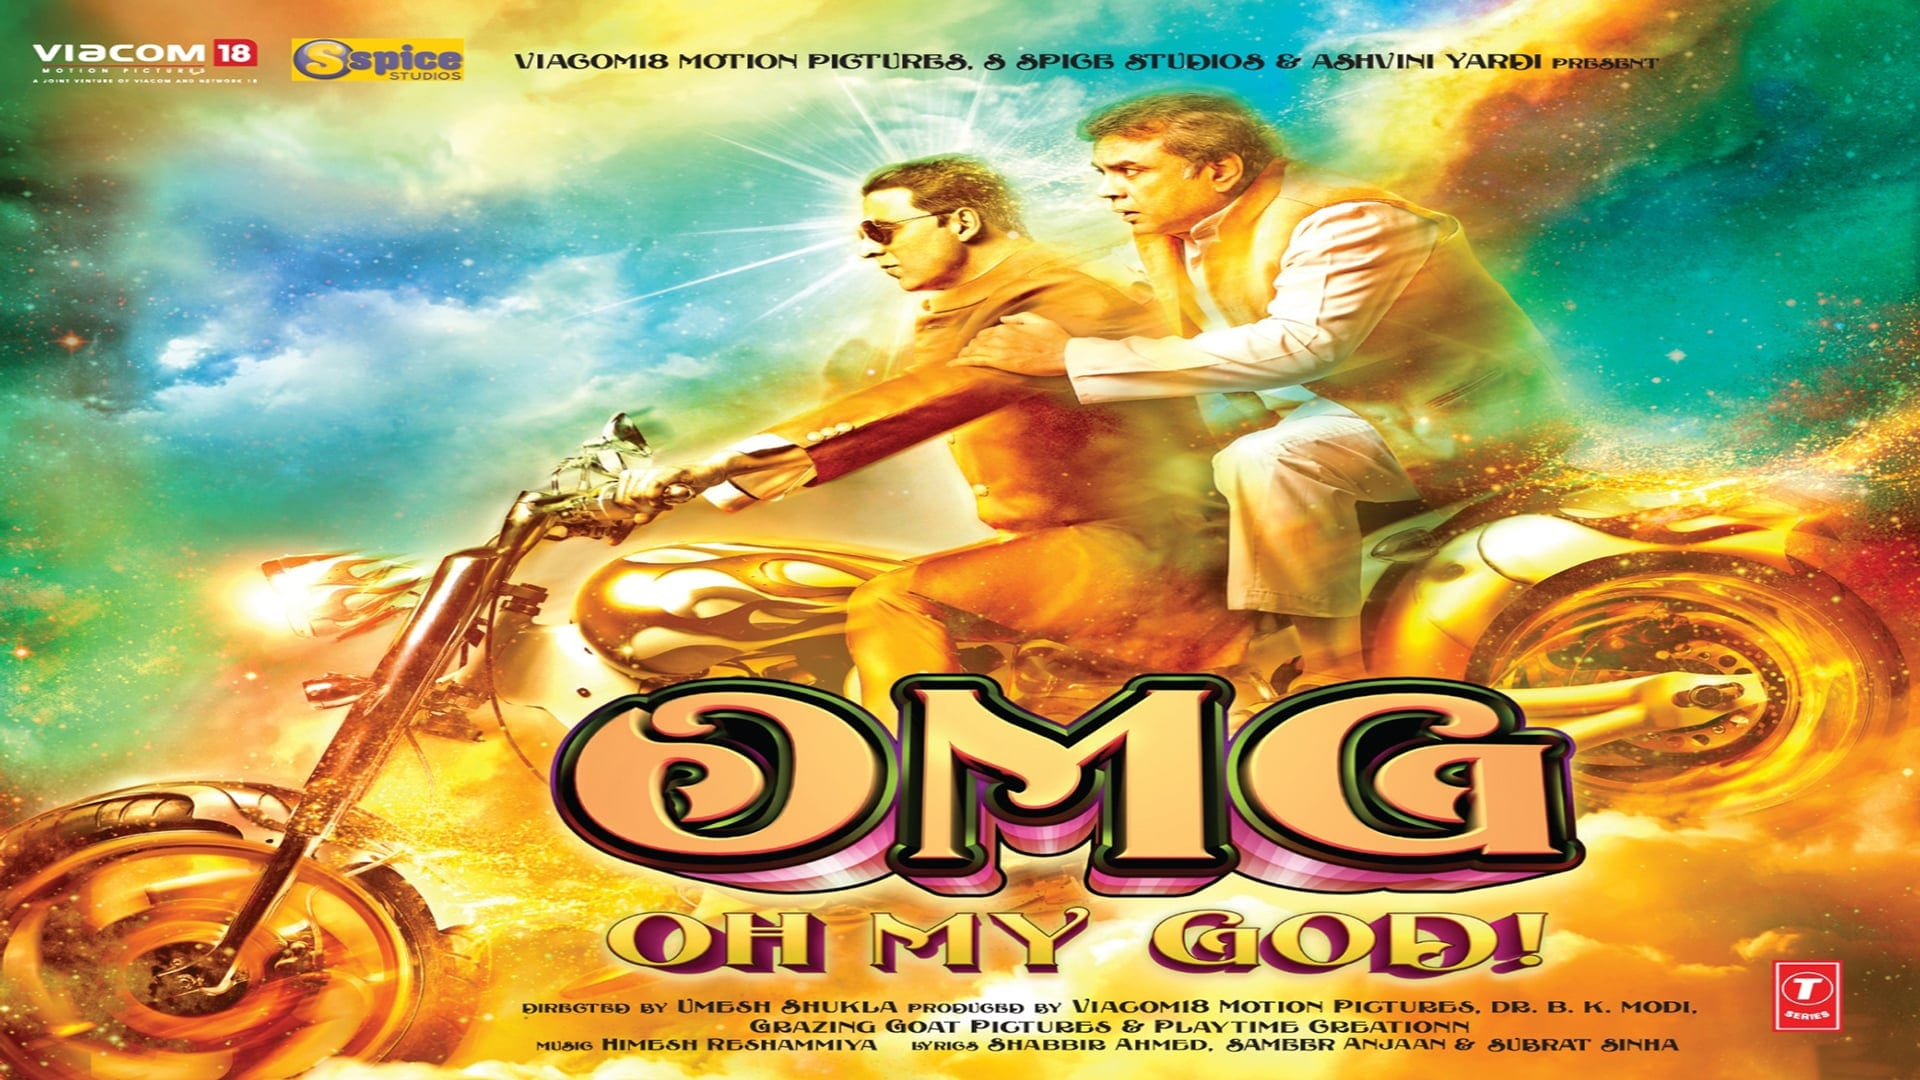 Watch Omg Oh My God Full Movie Online For Free In Hd Quality